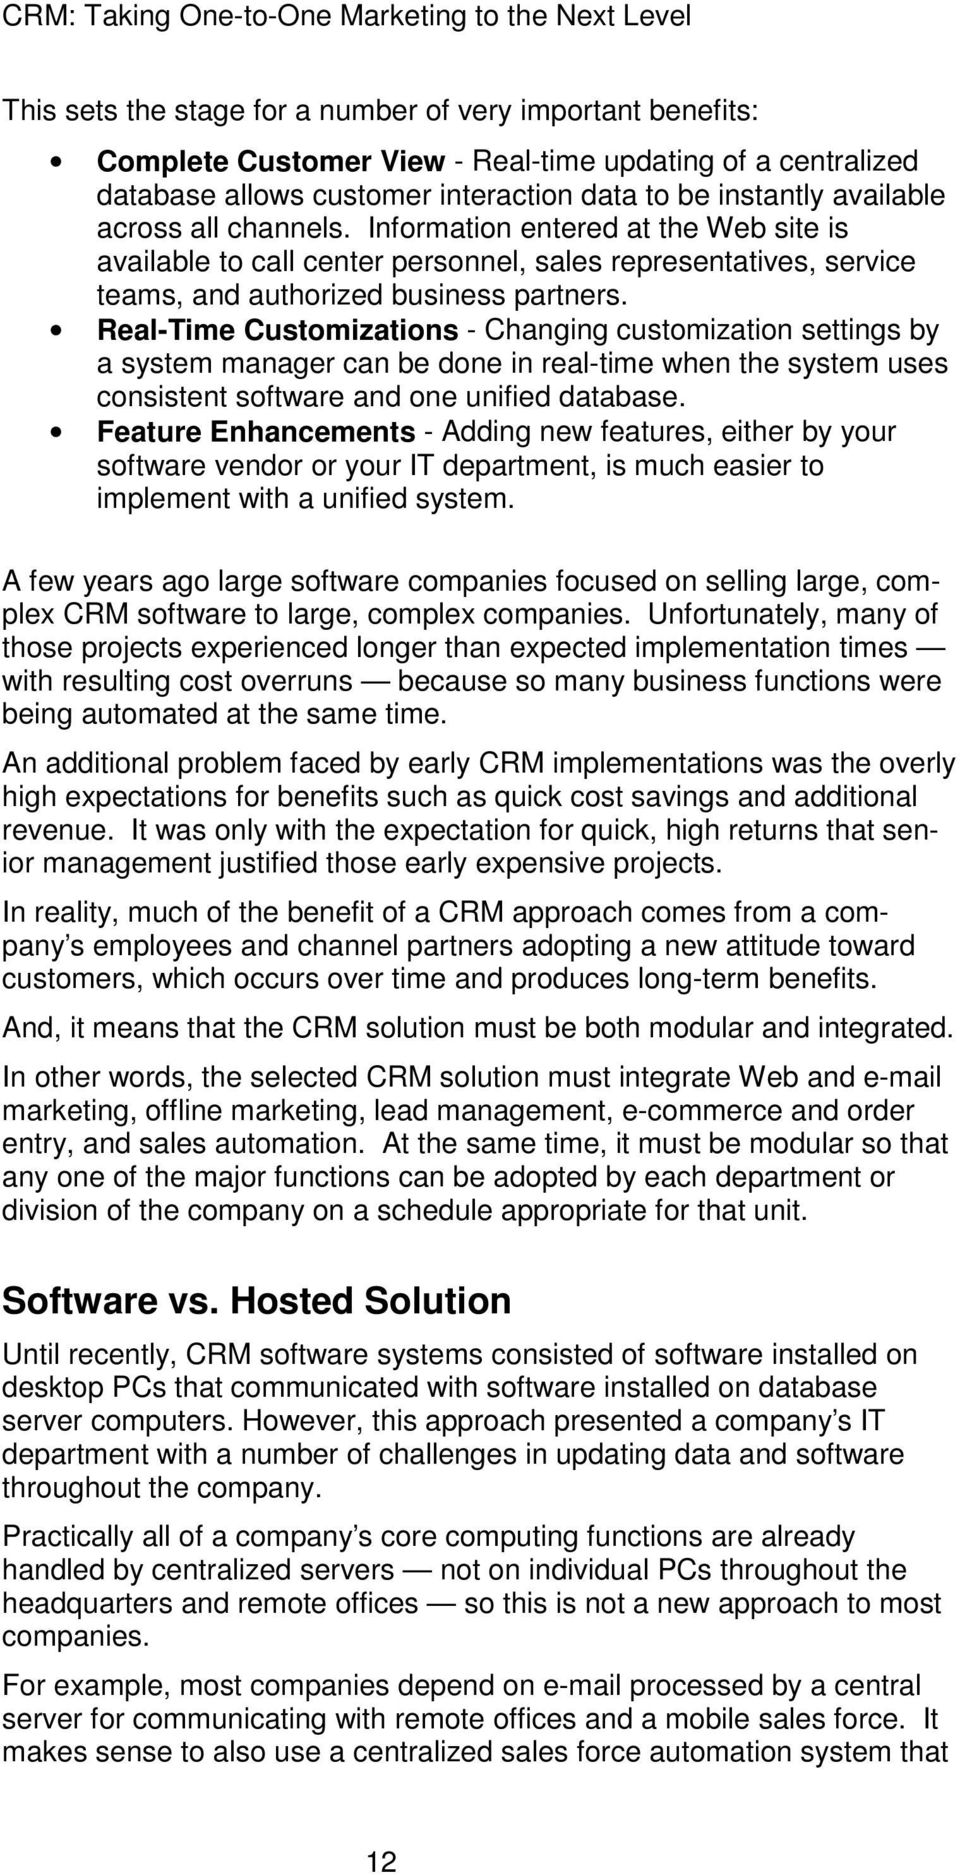 Real-Time Customizations - Changing customization settings by a system manager can be done in real-time when the system uses consistent software and one unified database.